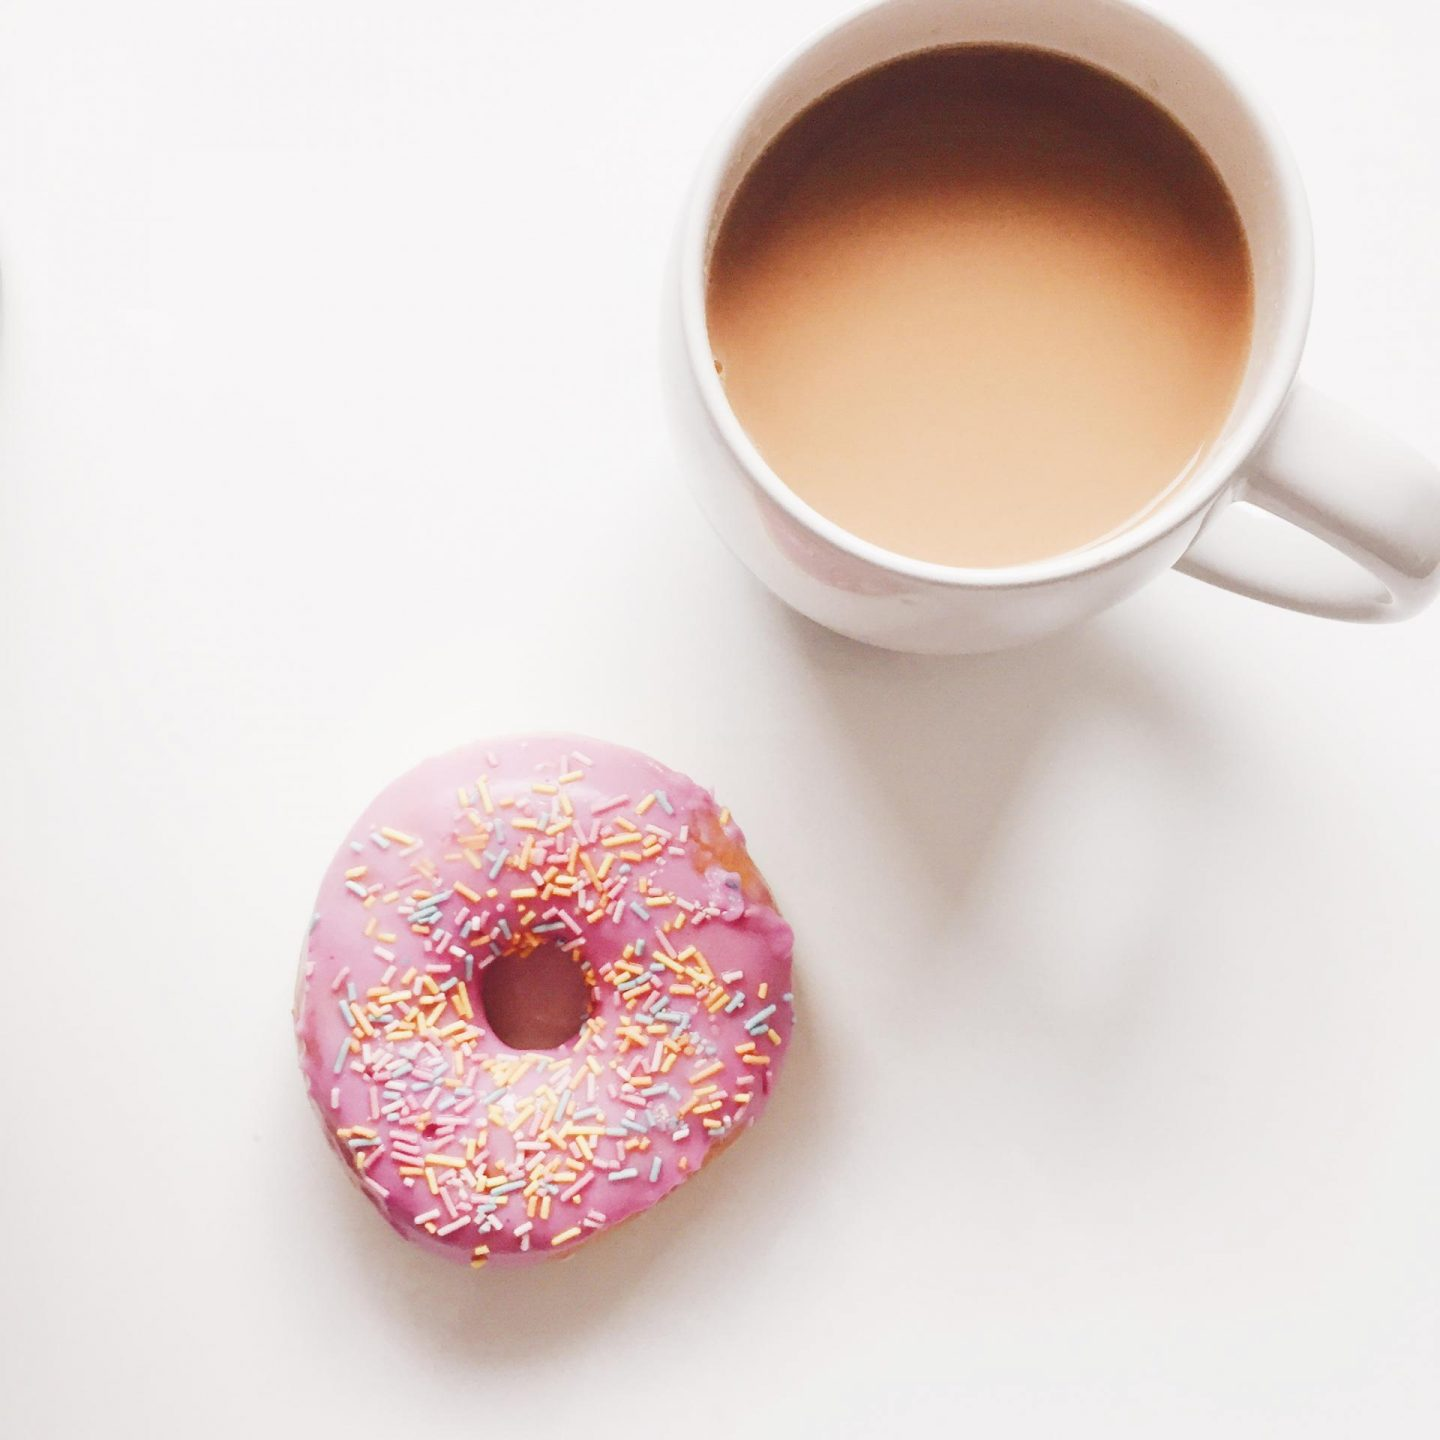 Doughnut-and-tea-flatlay